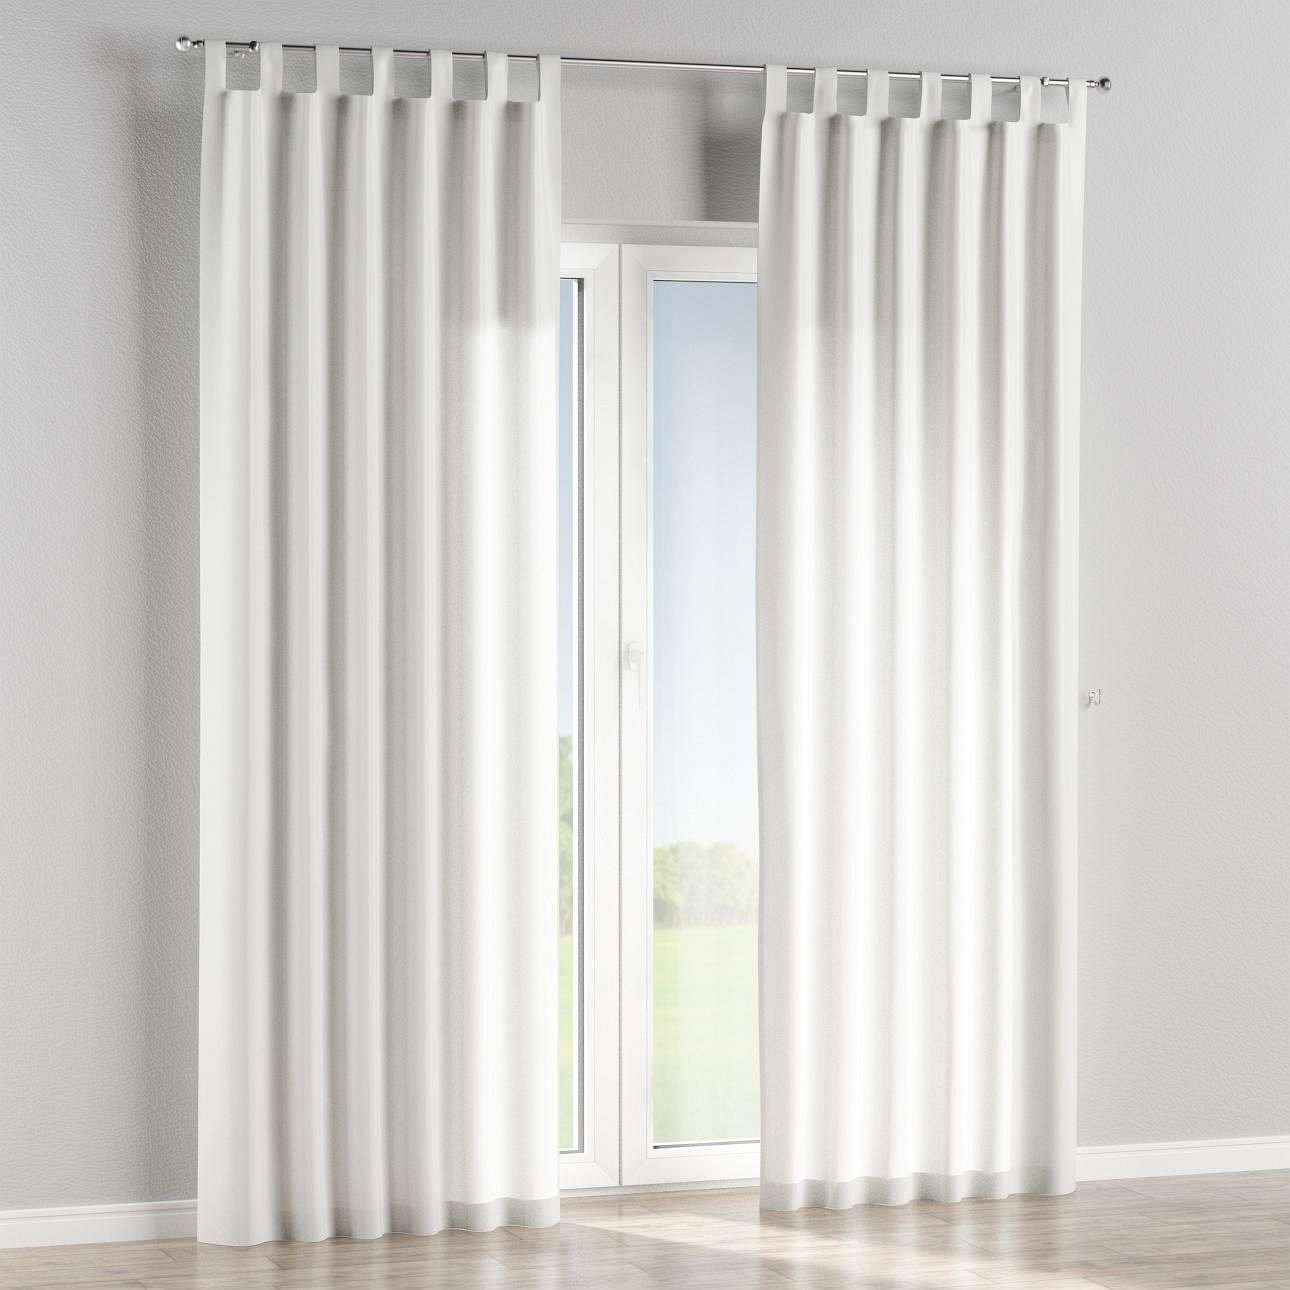 Tab top curtains in collection Mirella, fabric: 141-11